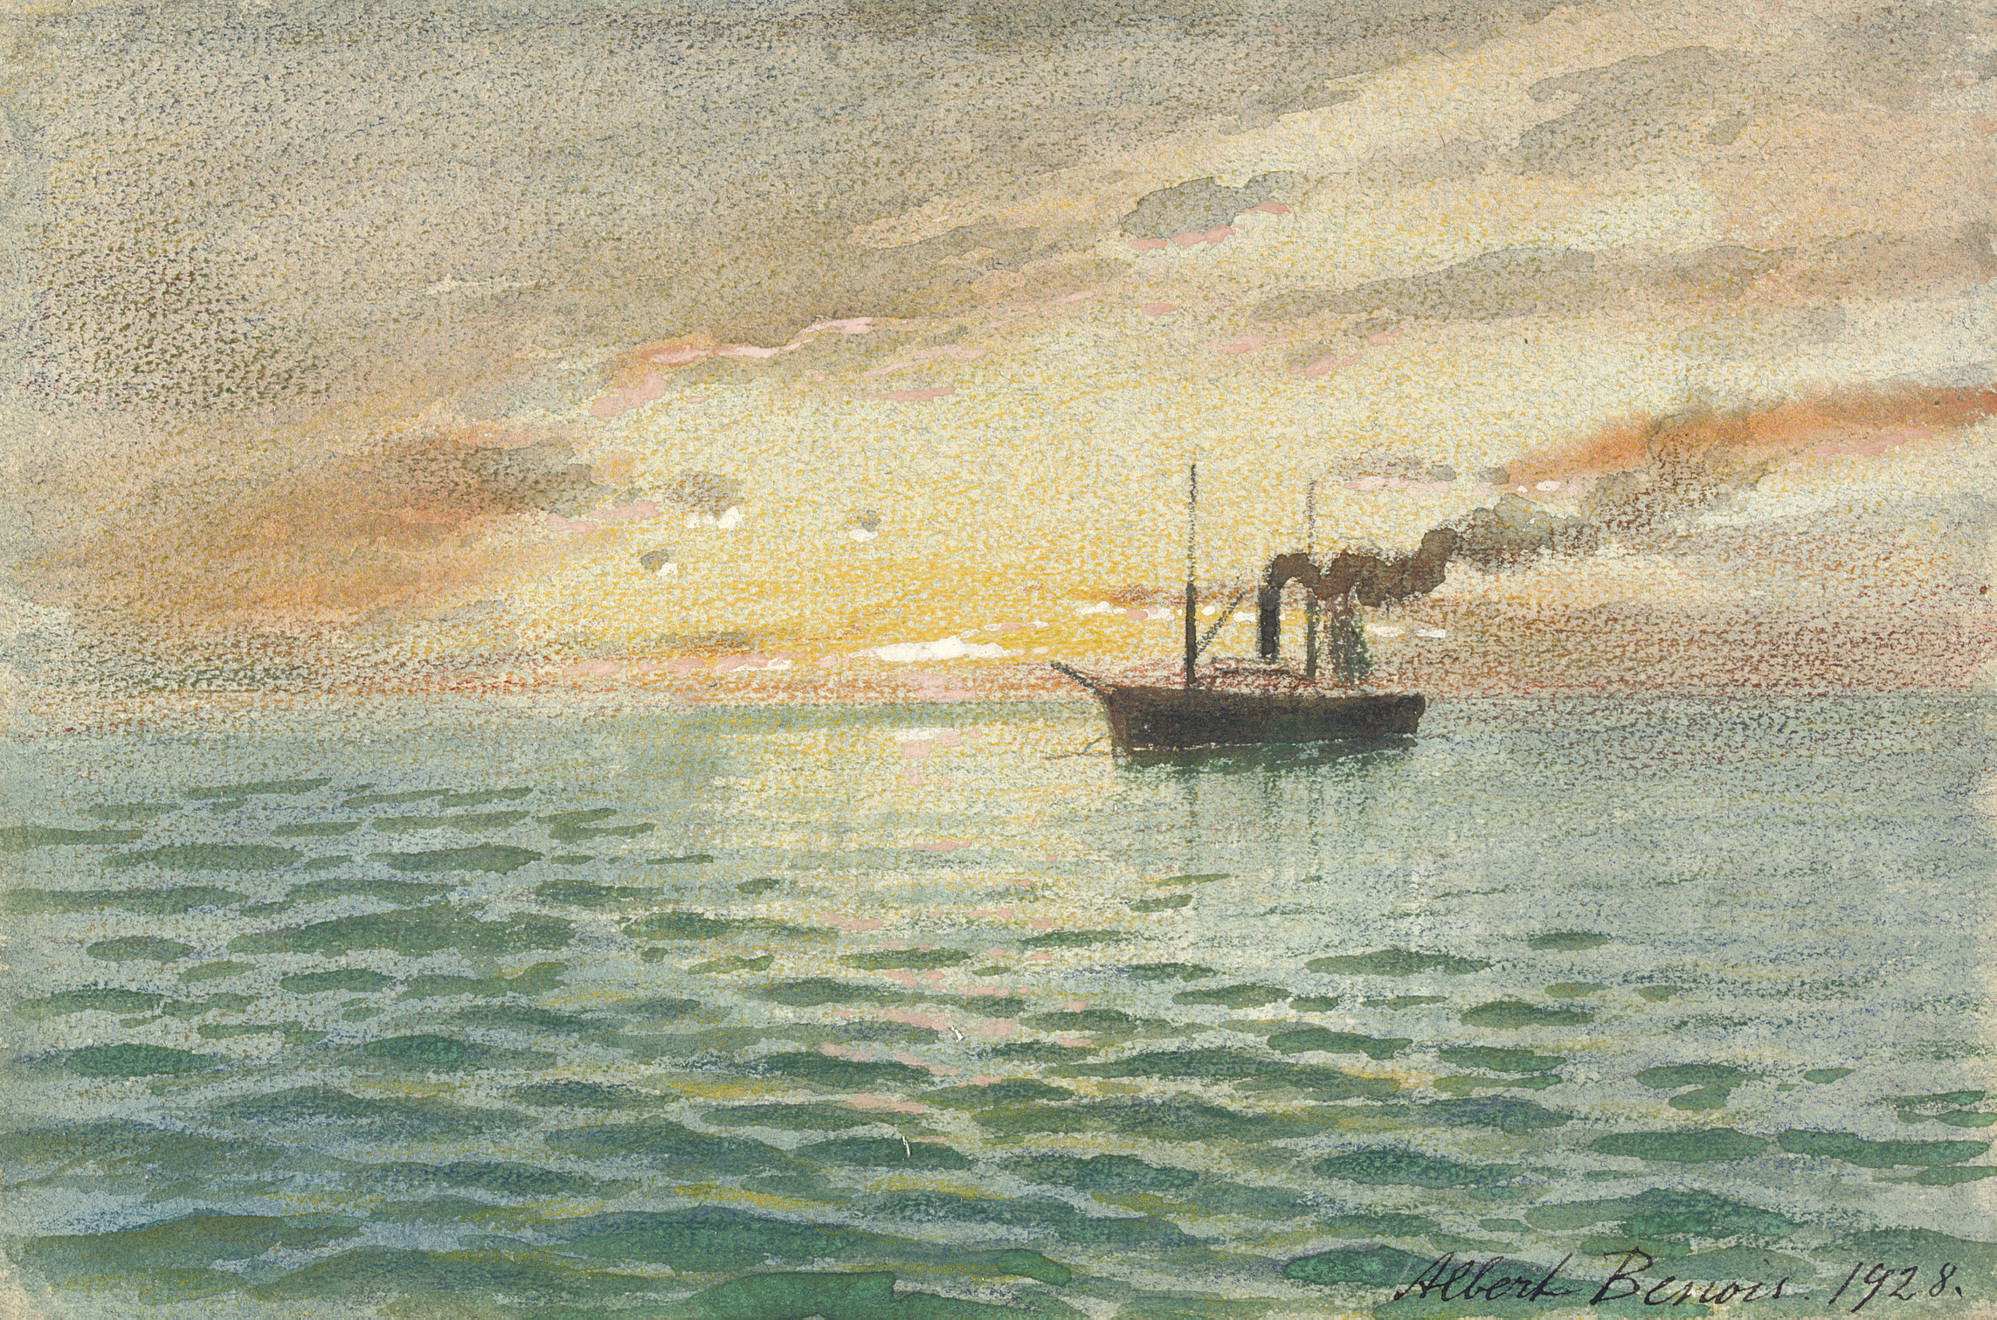 A steamboat at sea